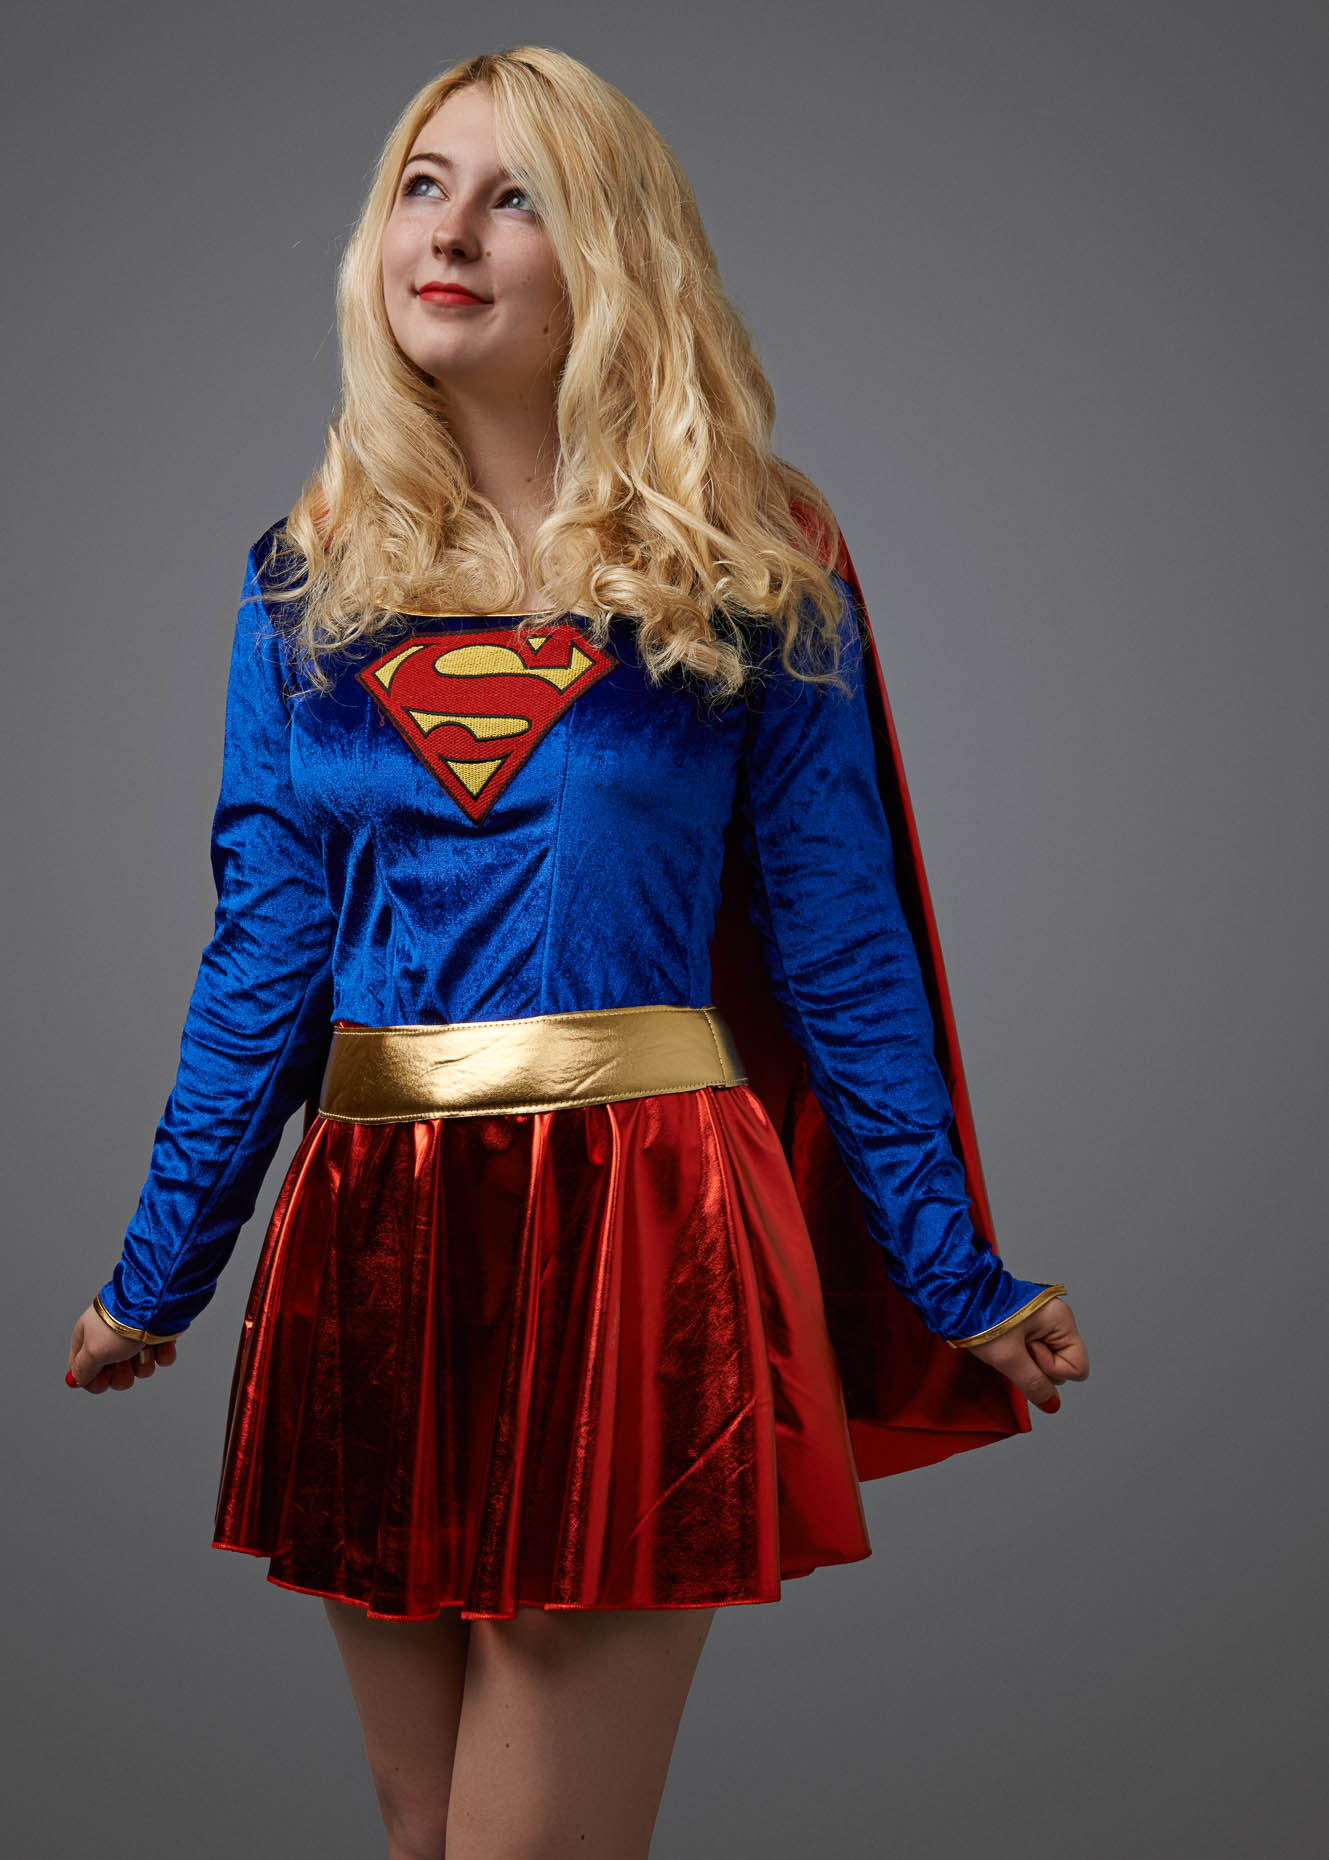 smallville_comicon_supergirl_cosplayer_014